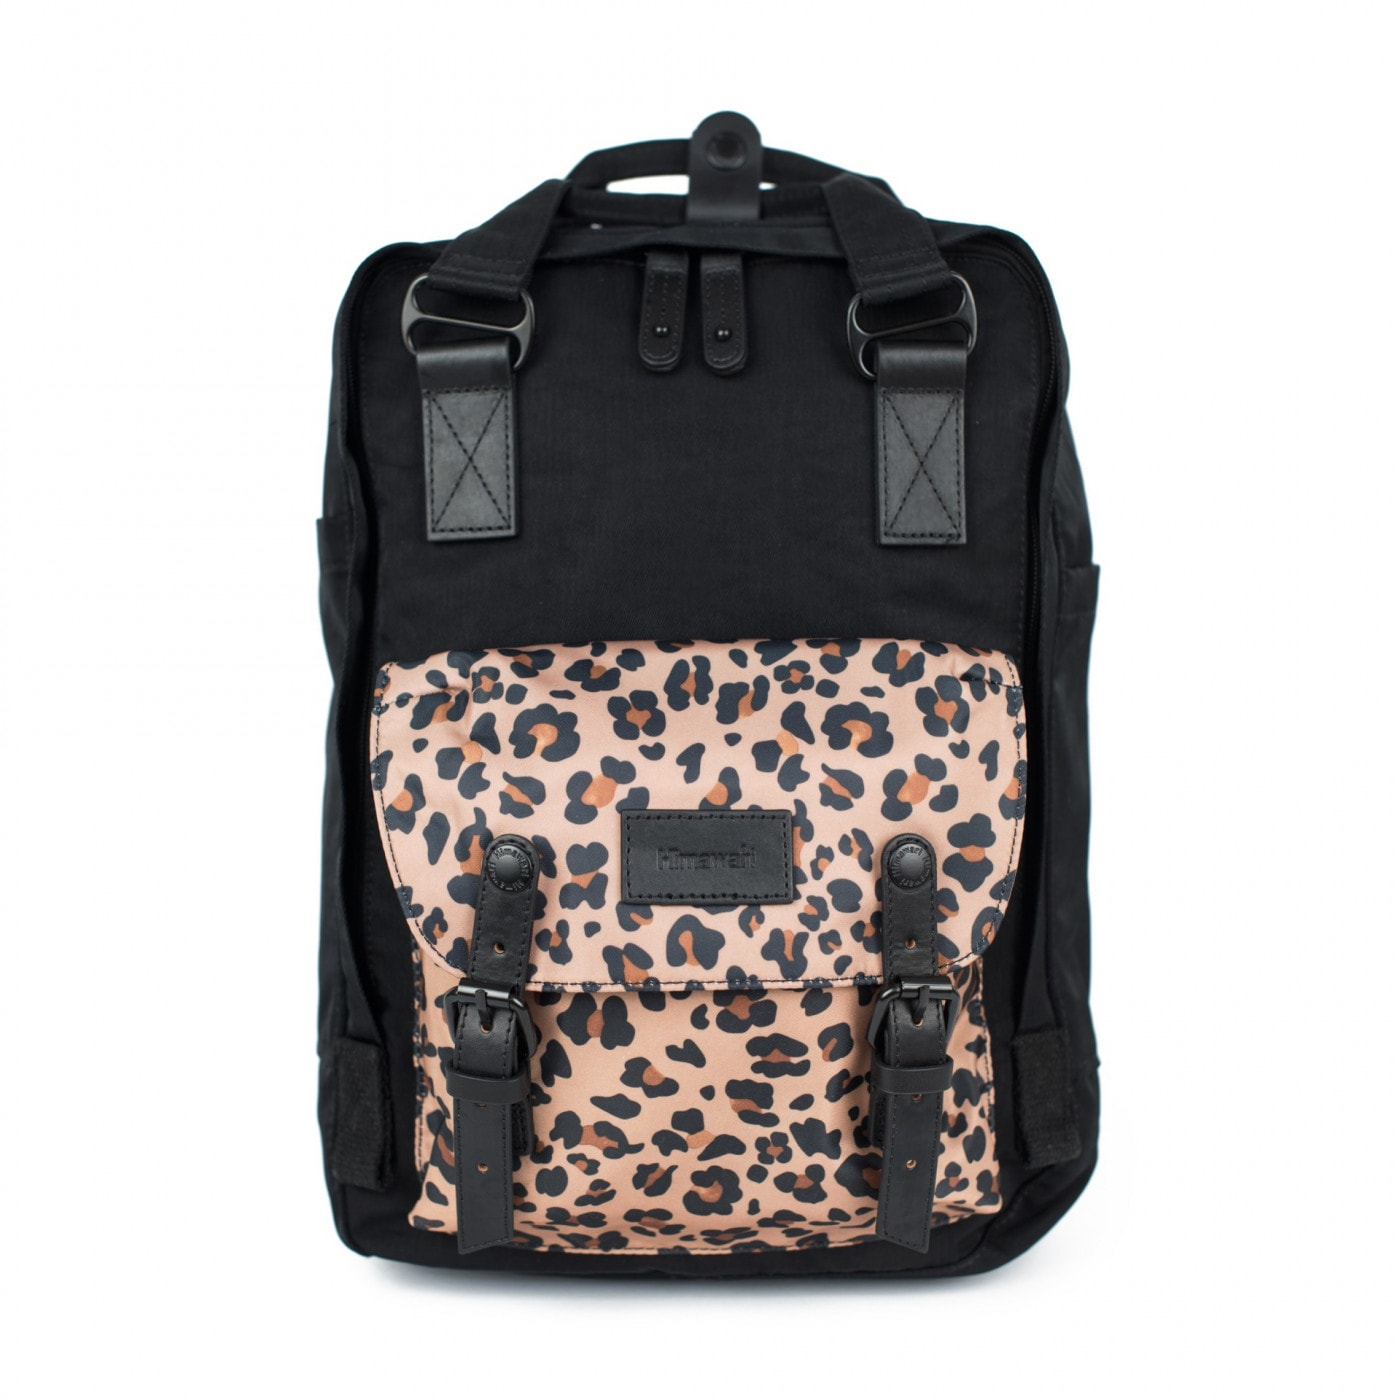 Art Of Polo Woman's Backpack tr20160